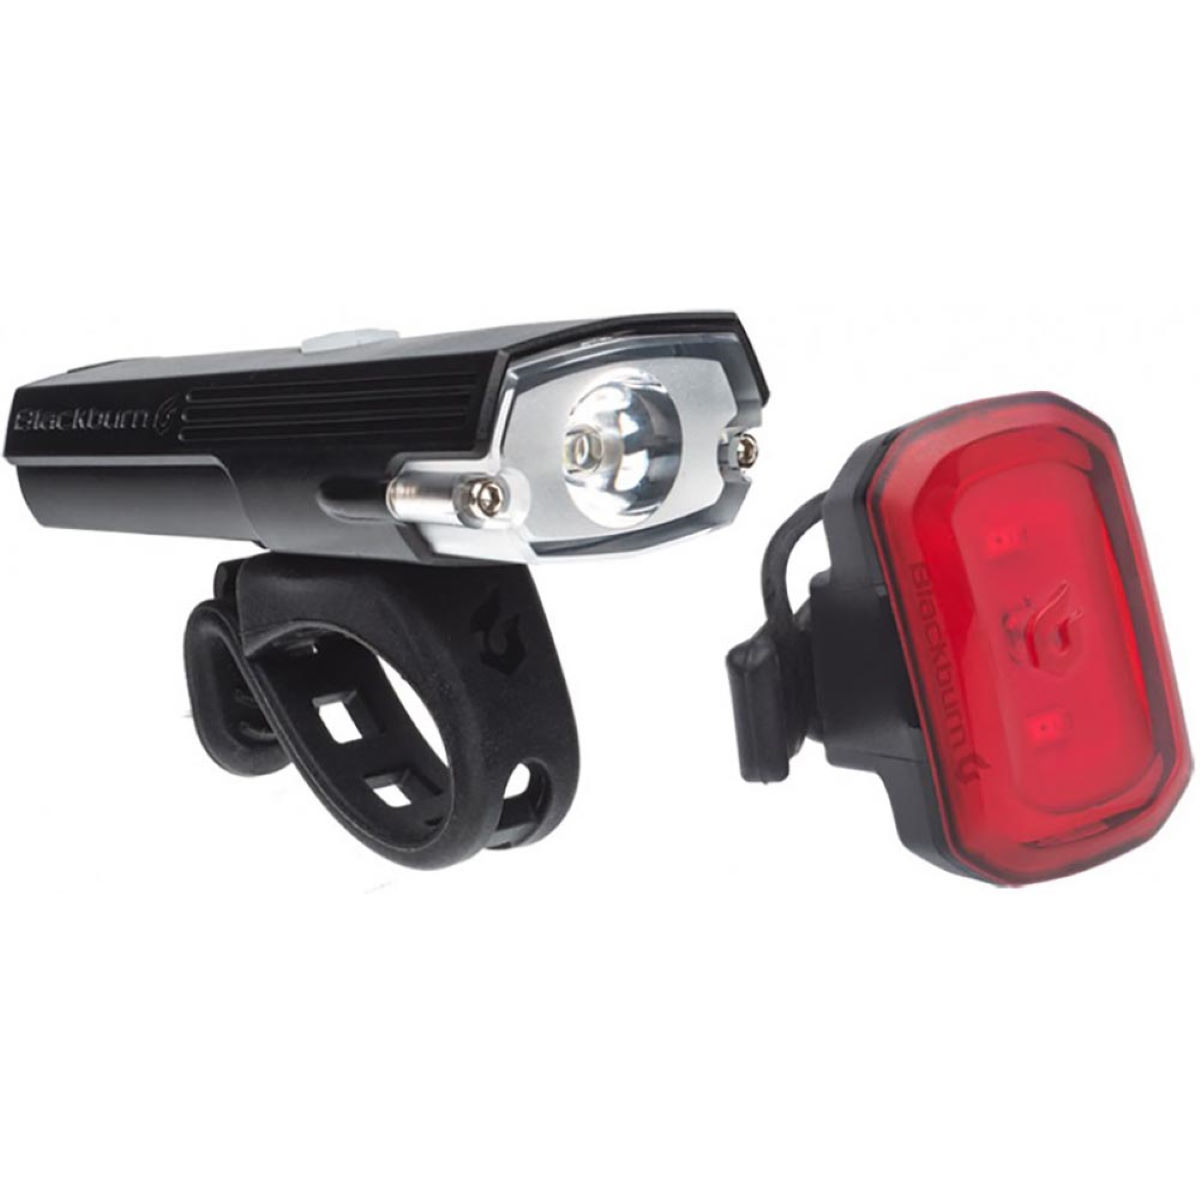 Blackburn Dayblazer 400 Front and Click USB Rear Set - Juegos de luces